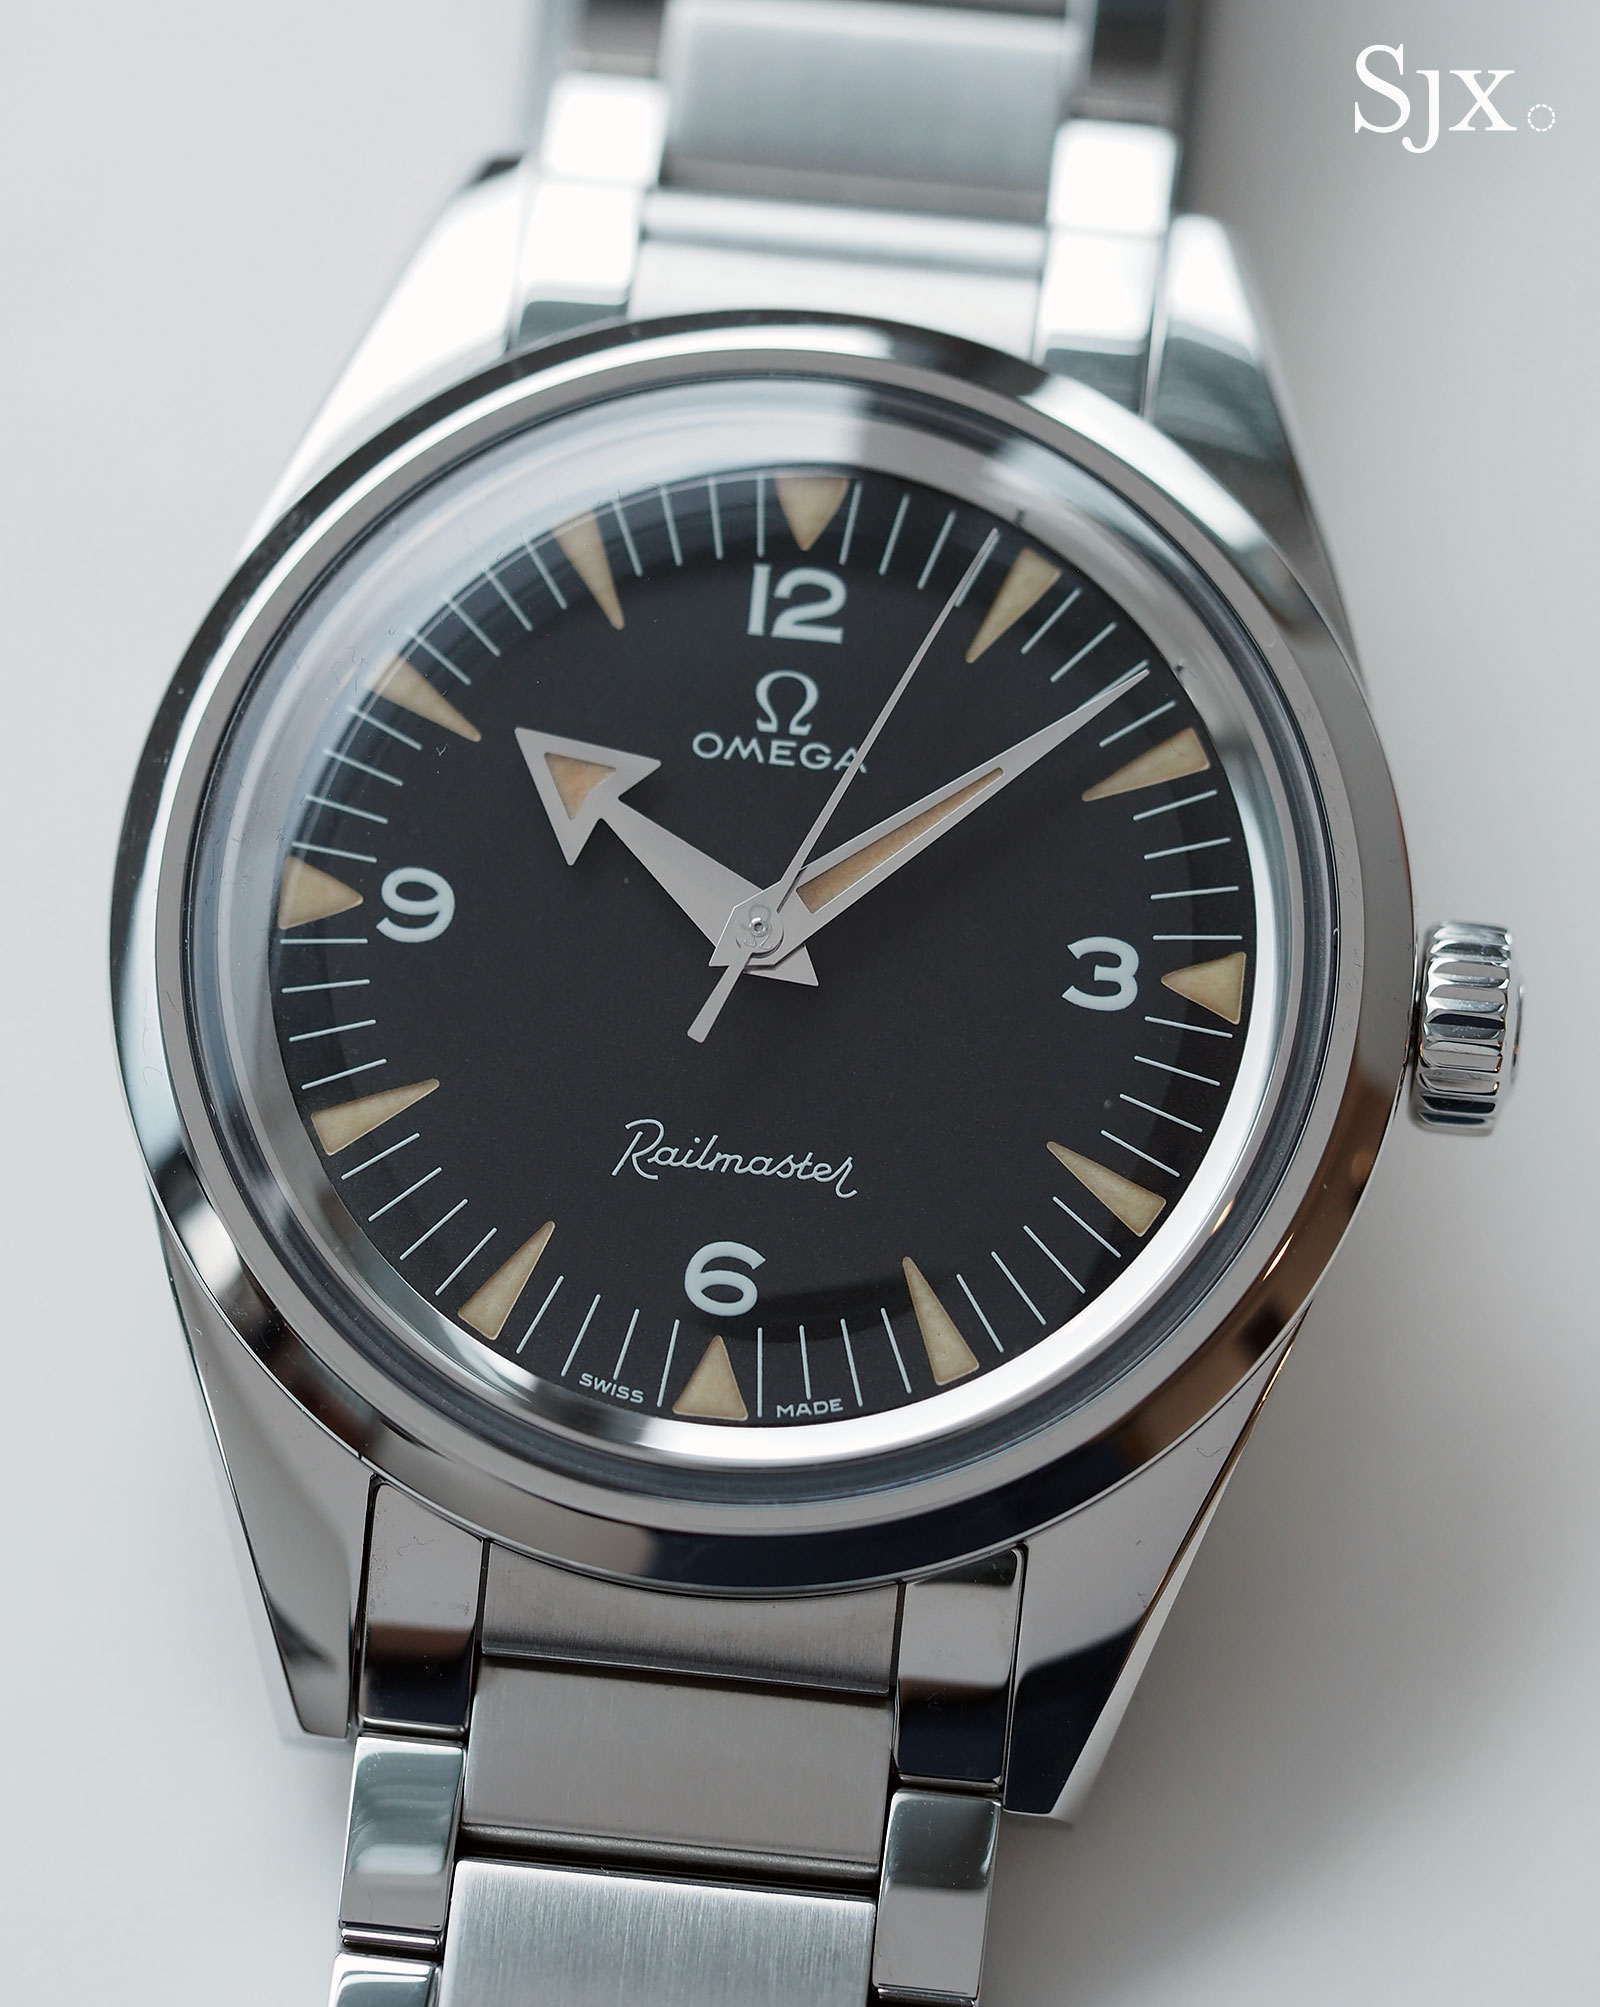 Omega 1957 Trilogy Railmaster 1